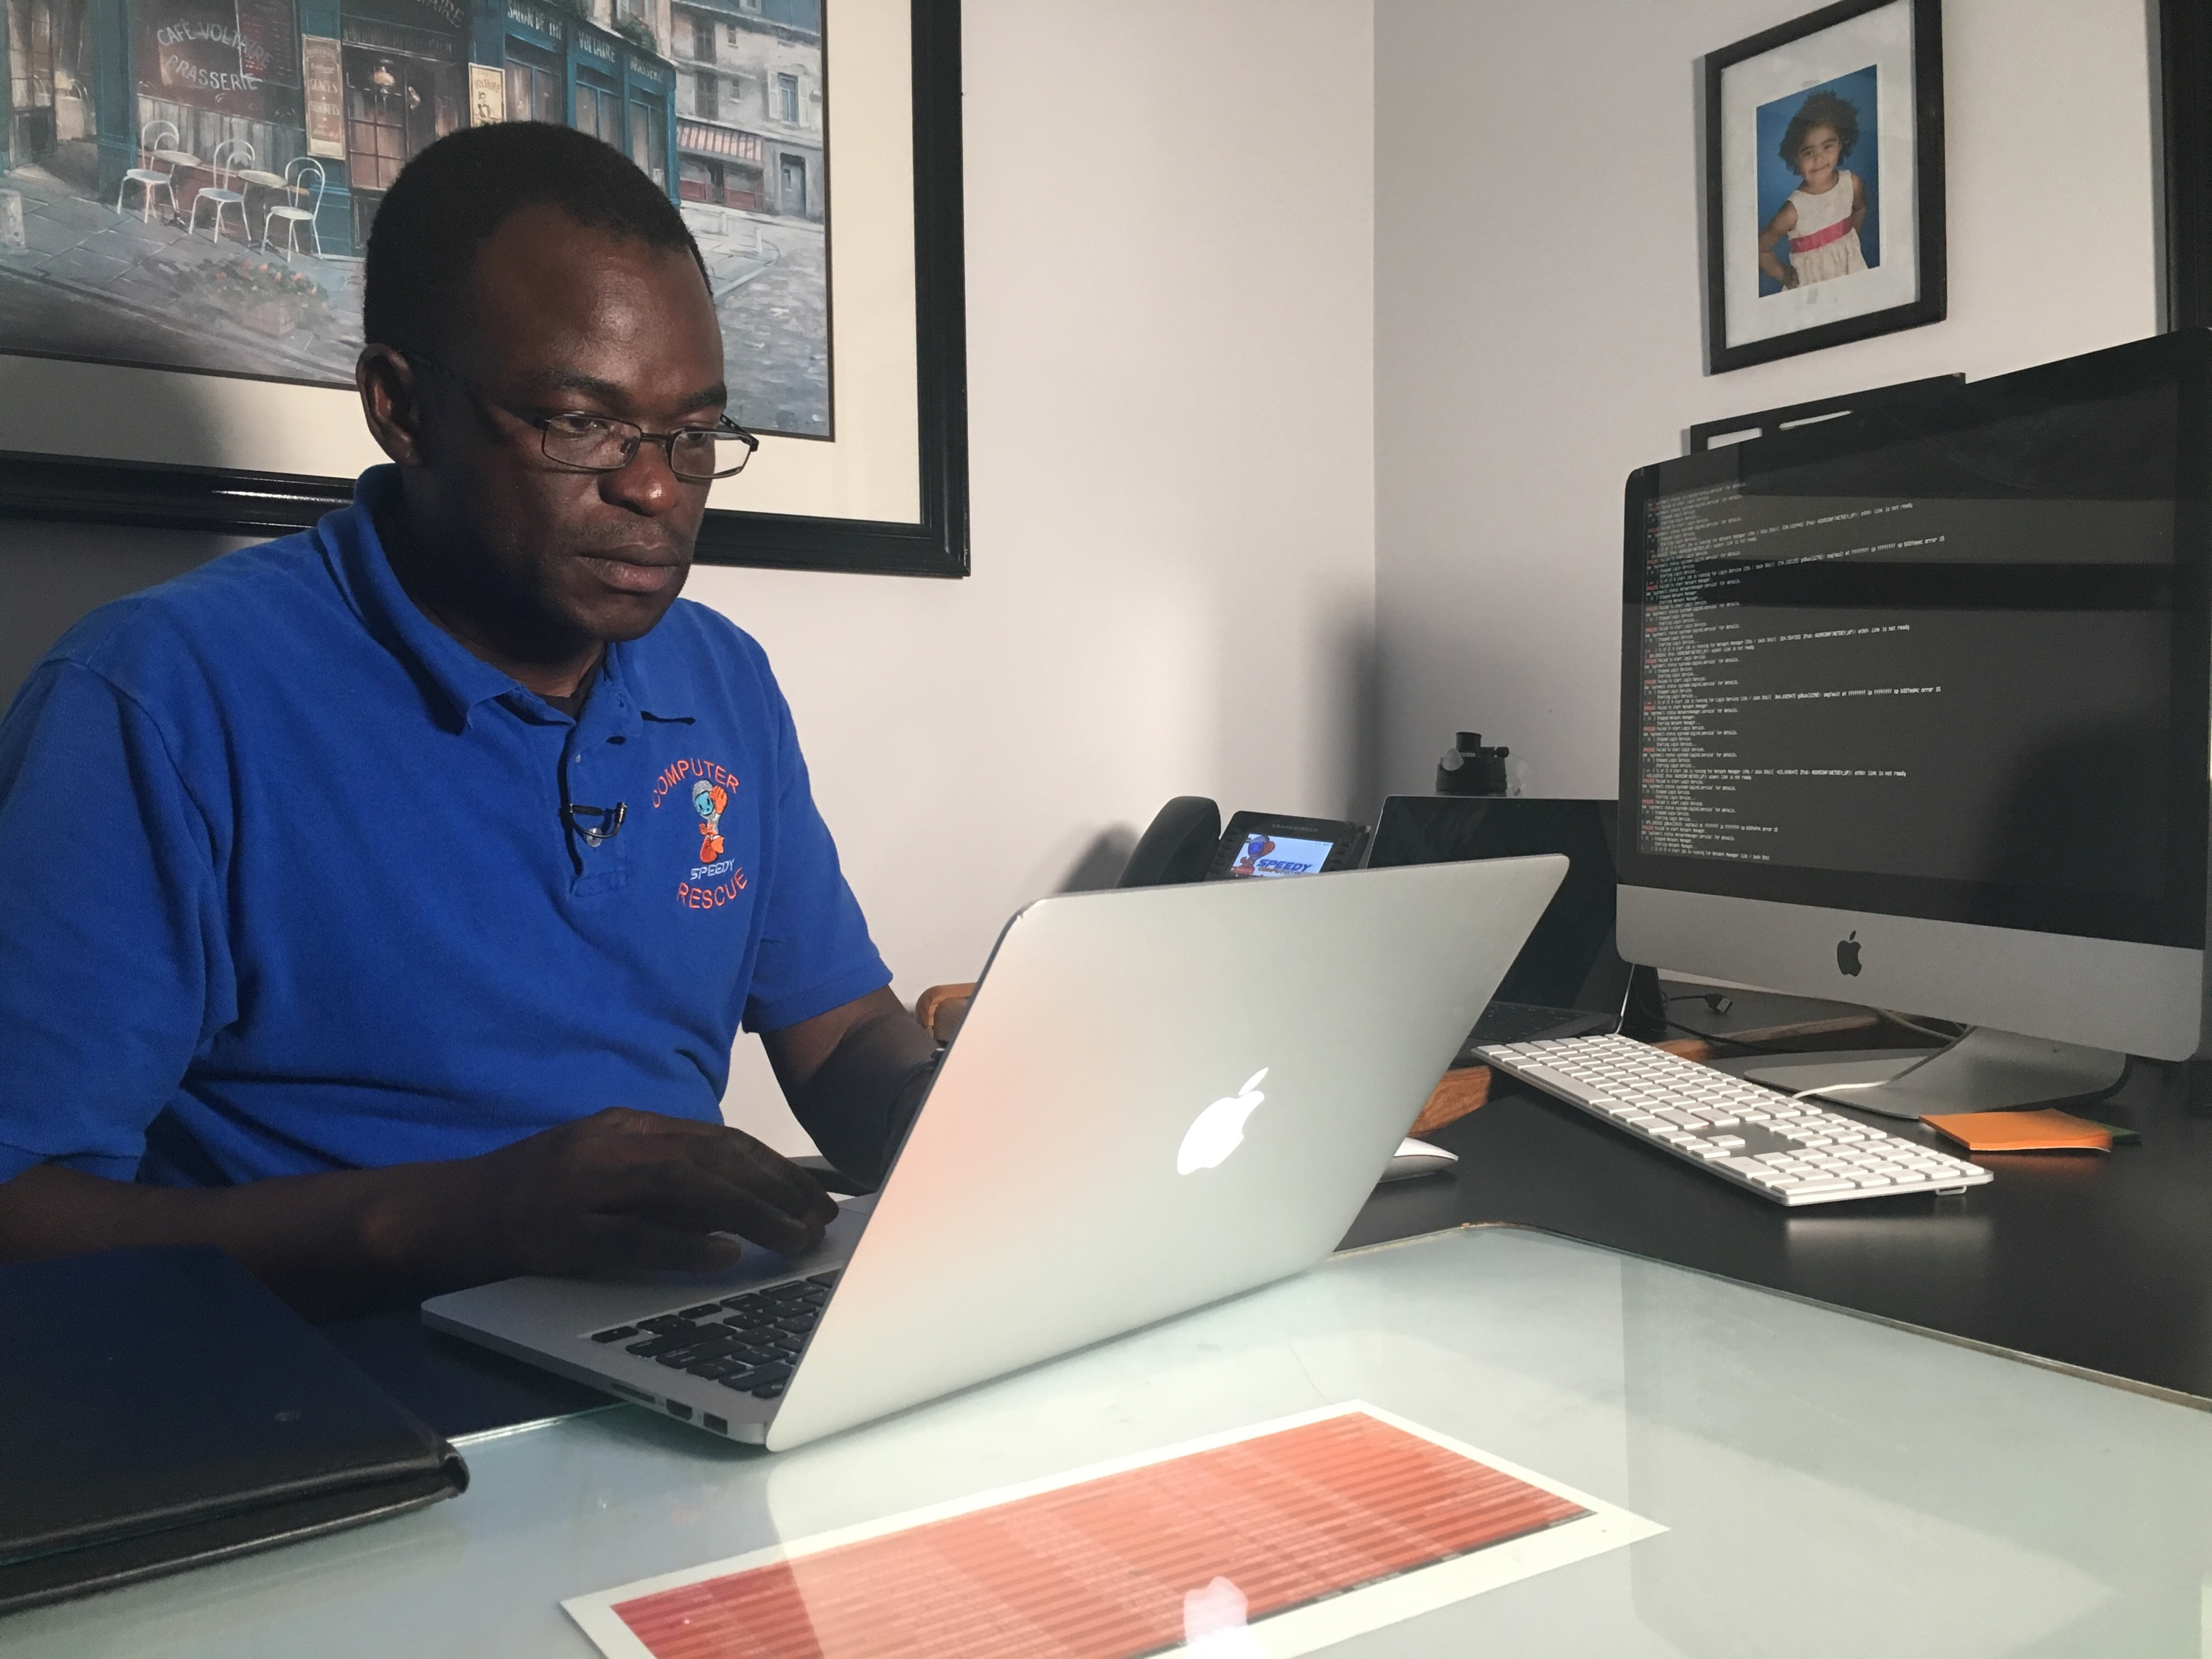 Steve Opoku, president of Speedy Computer Rescue, demonstrates how easily hackers can access personal information. Photo taken Oct. 9, 2019. (WWMT/Genevieve Grippo)